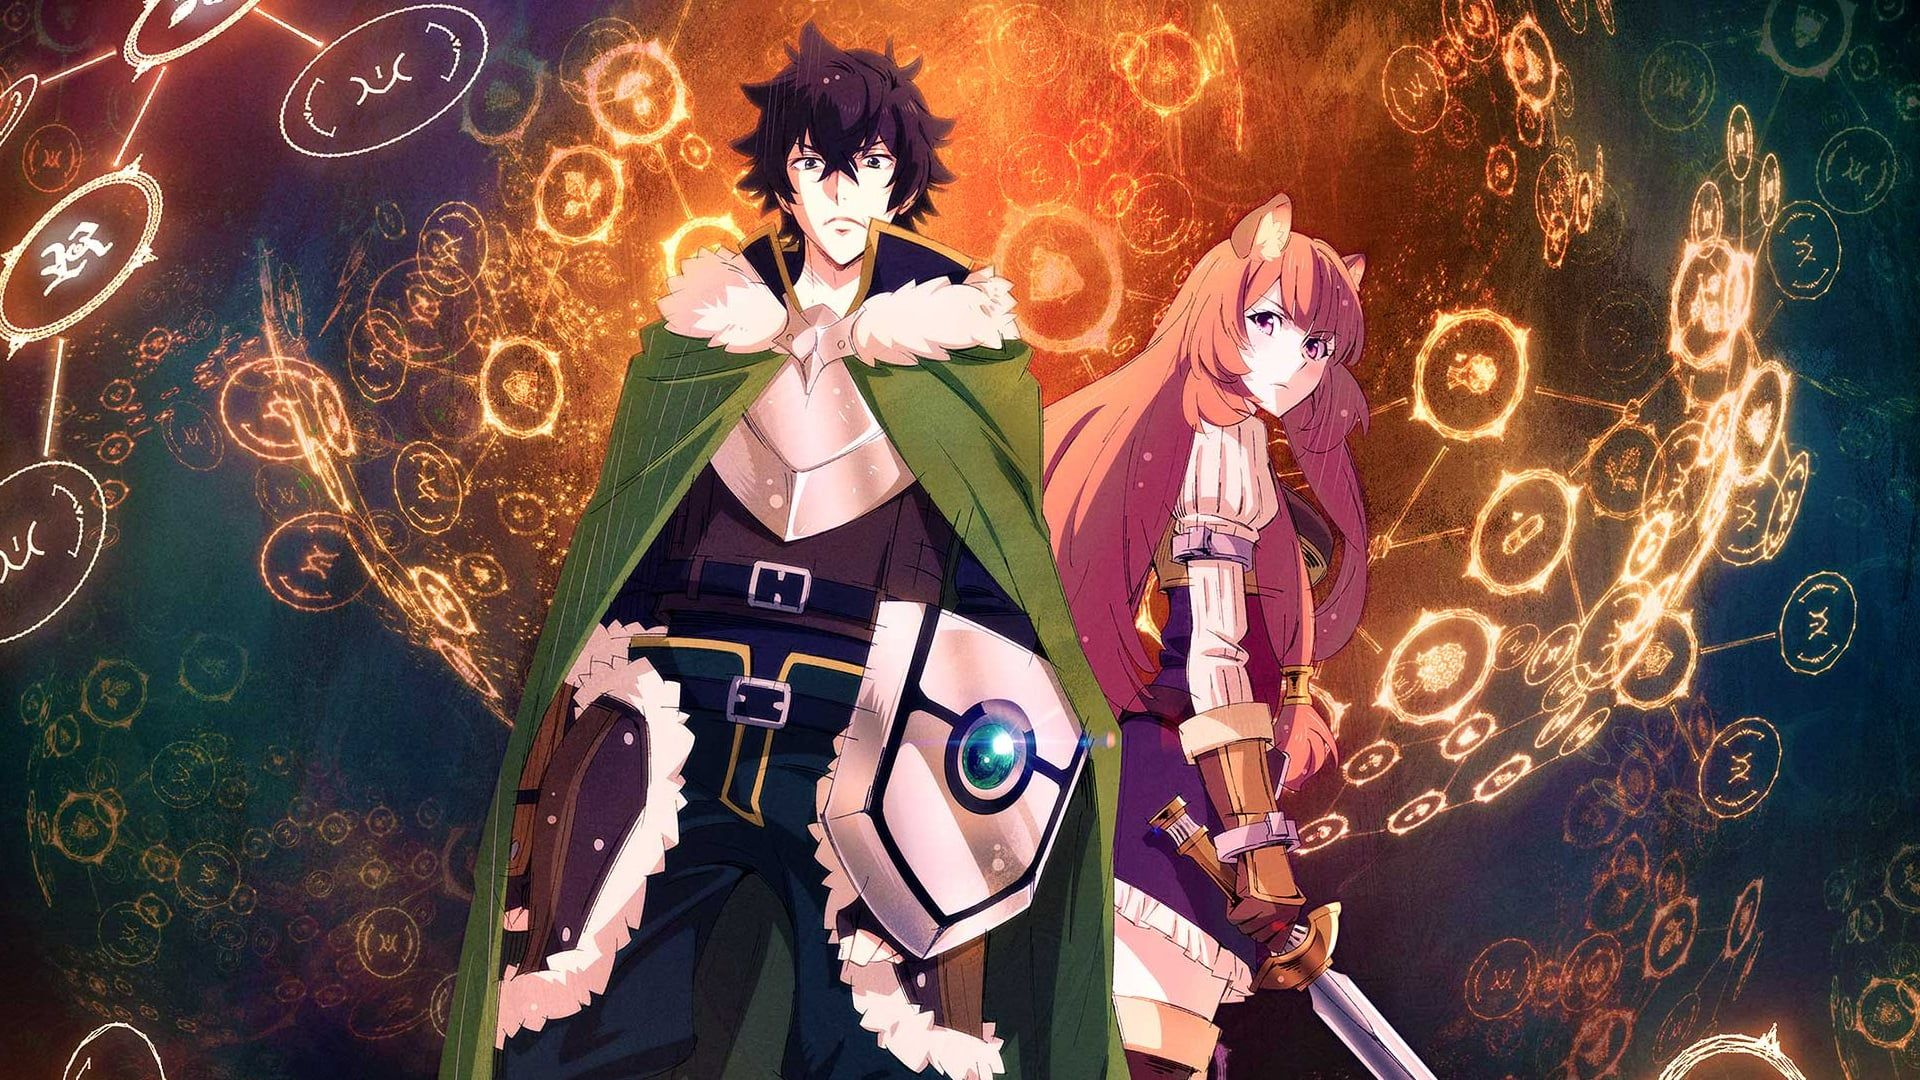 Free Download The Rising Of The Shield Hero Hd Wallpaper Anime